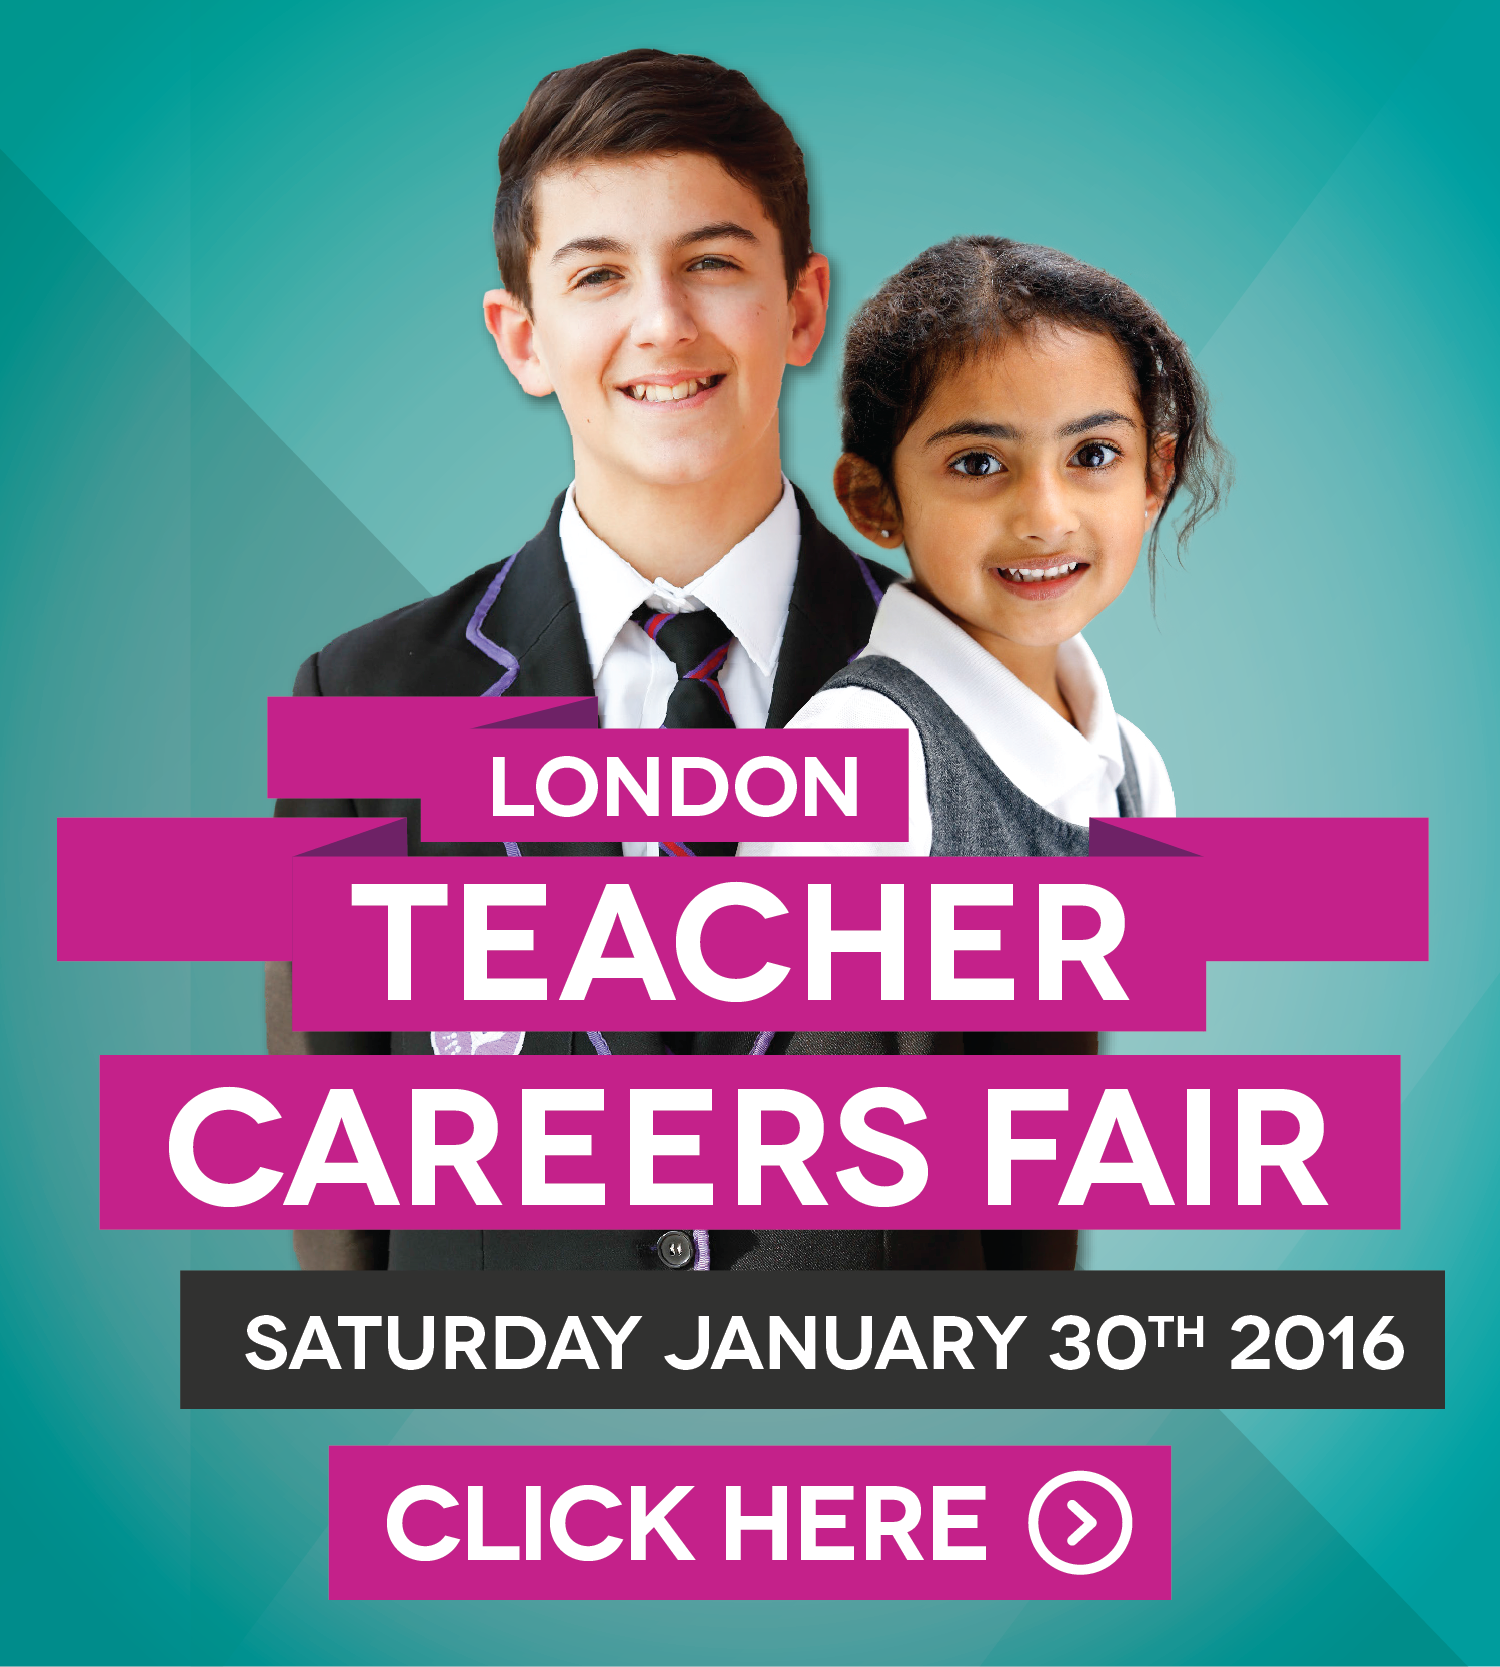 HFed_Careers Fair Website Banners_SC-01